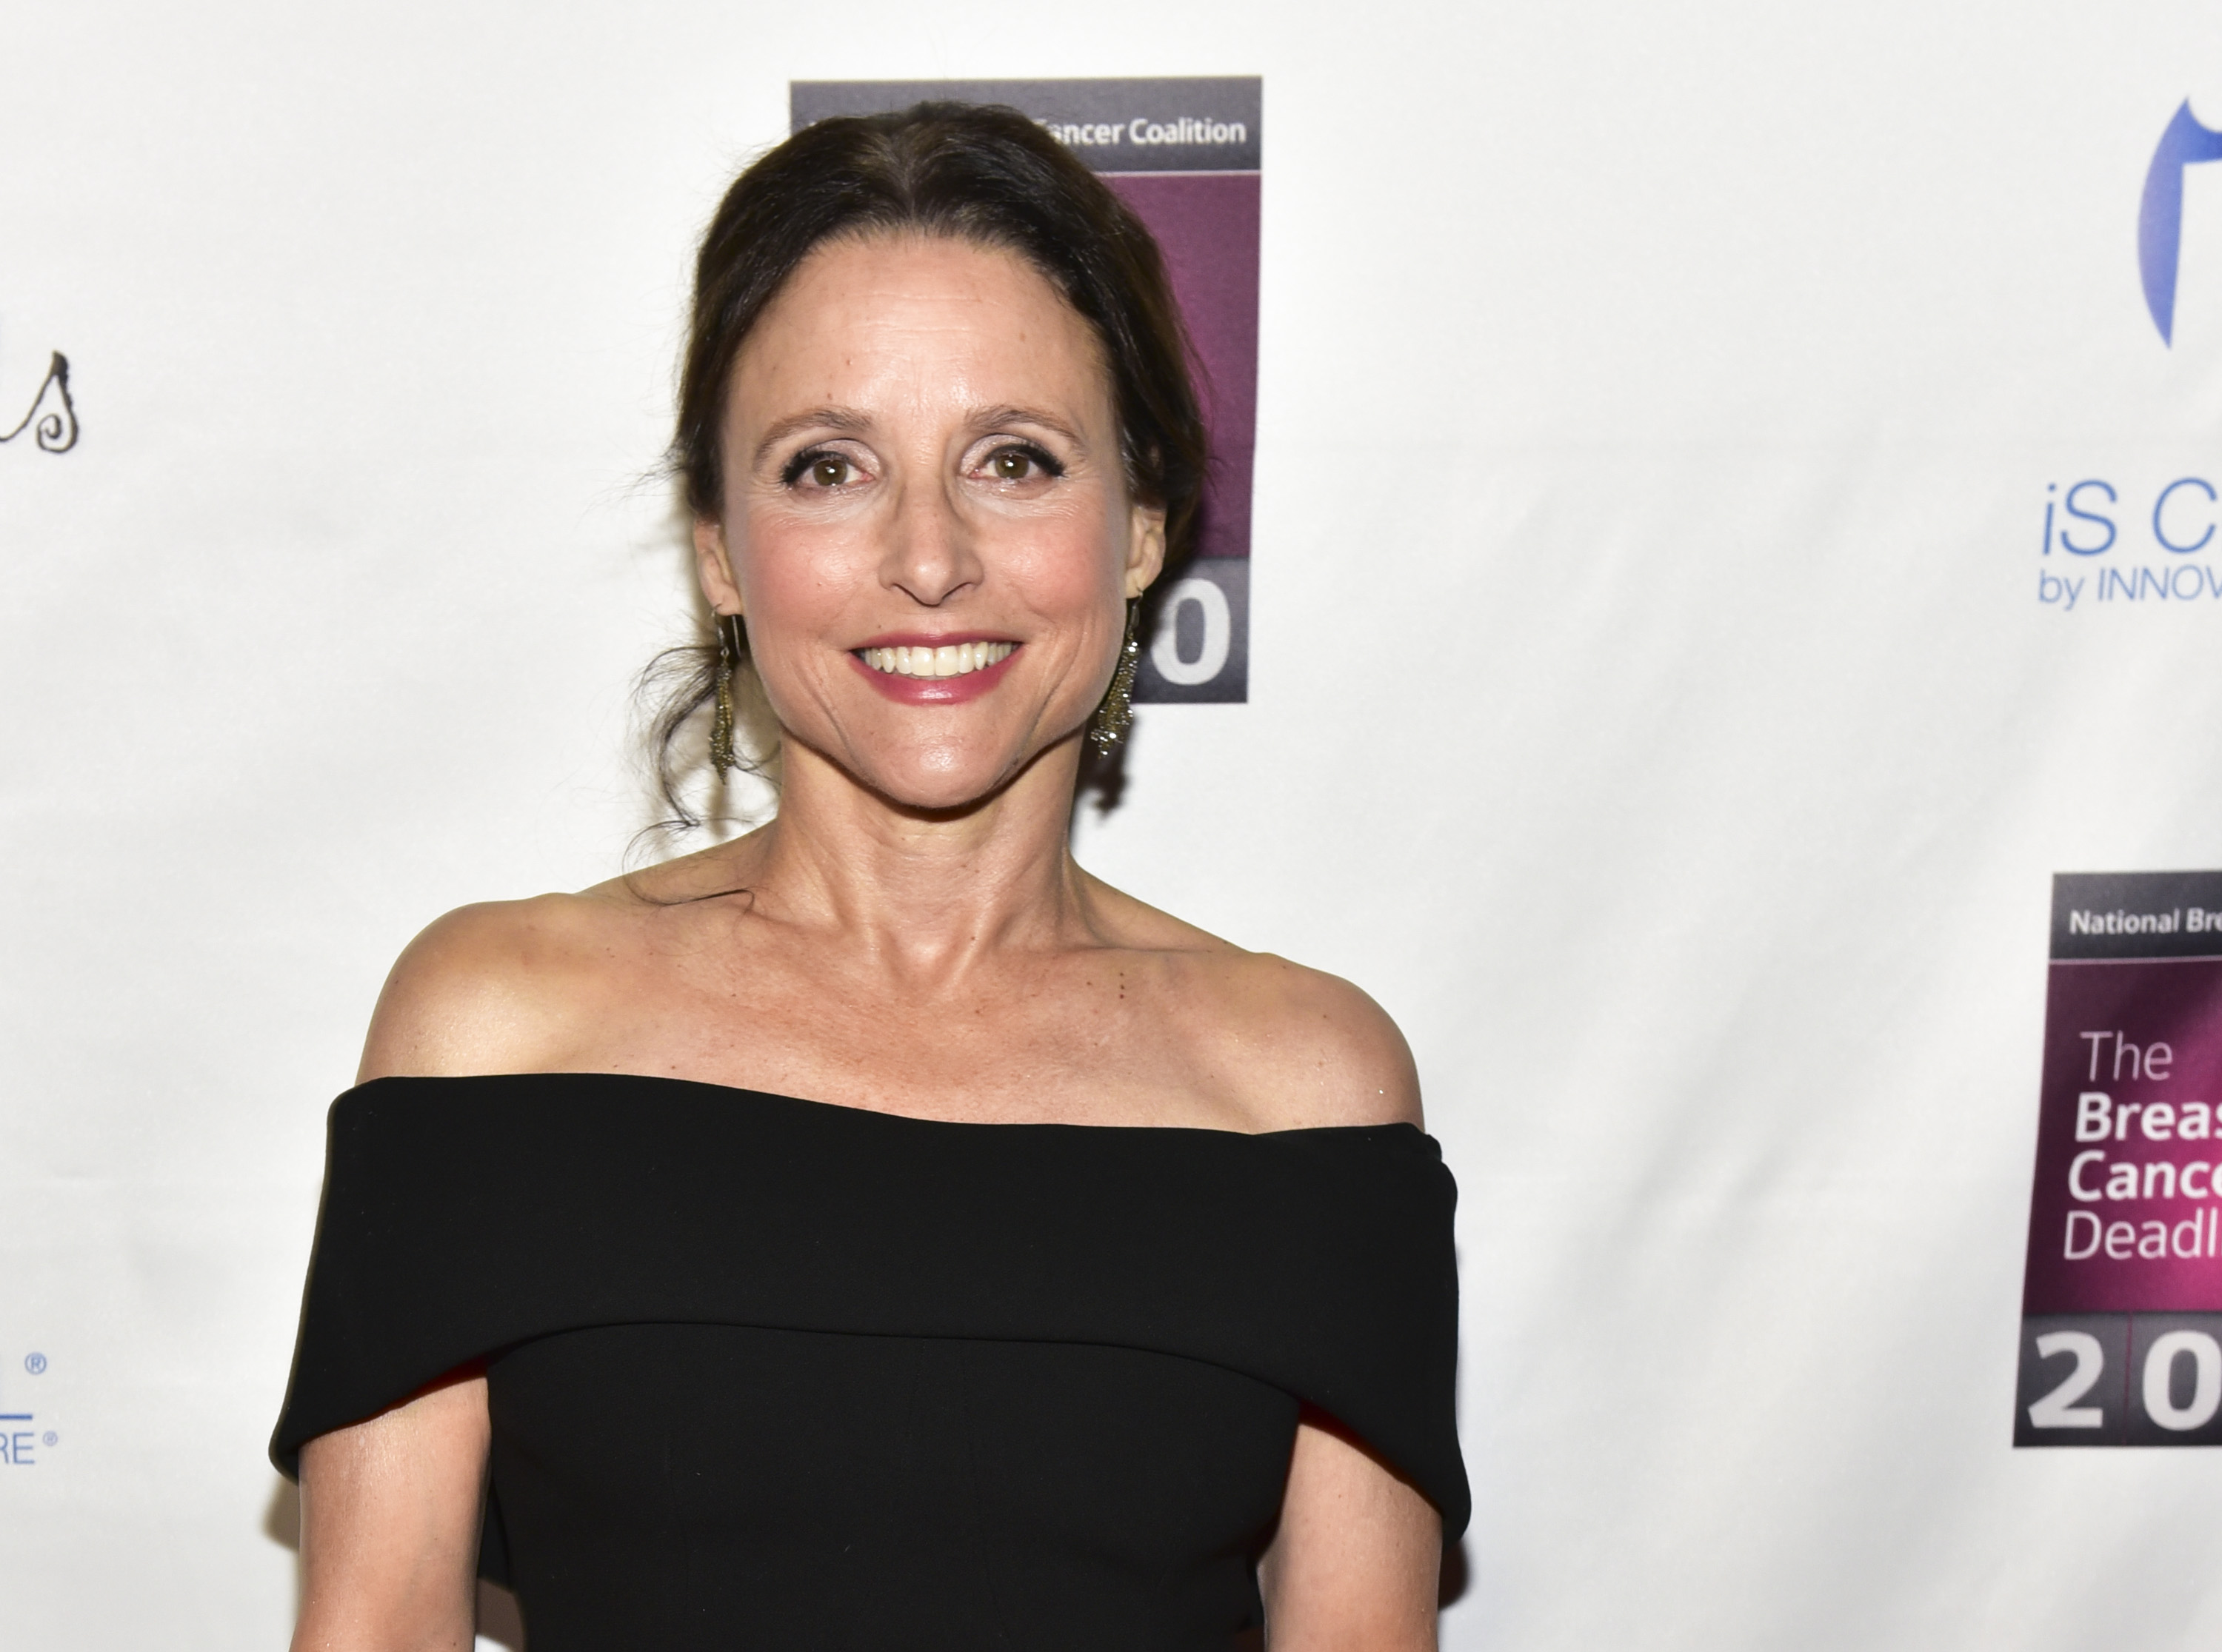 Apple signs Julia Louis-Dreyfus to develop projects for streaming service